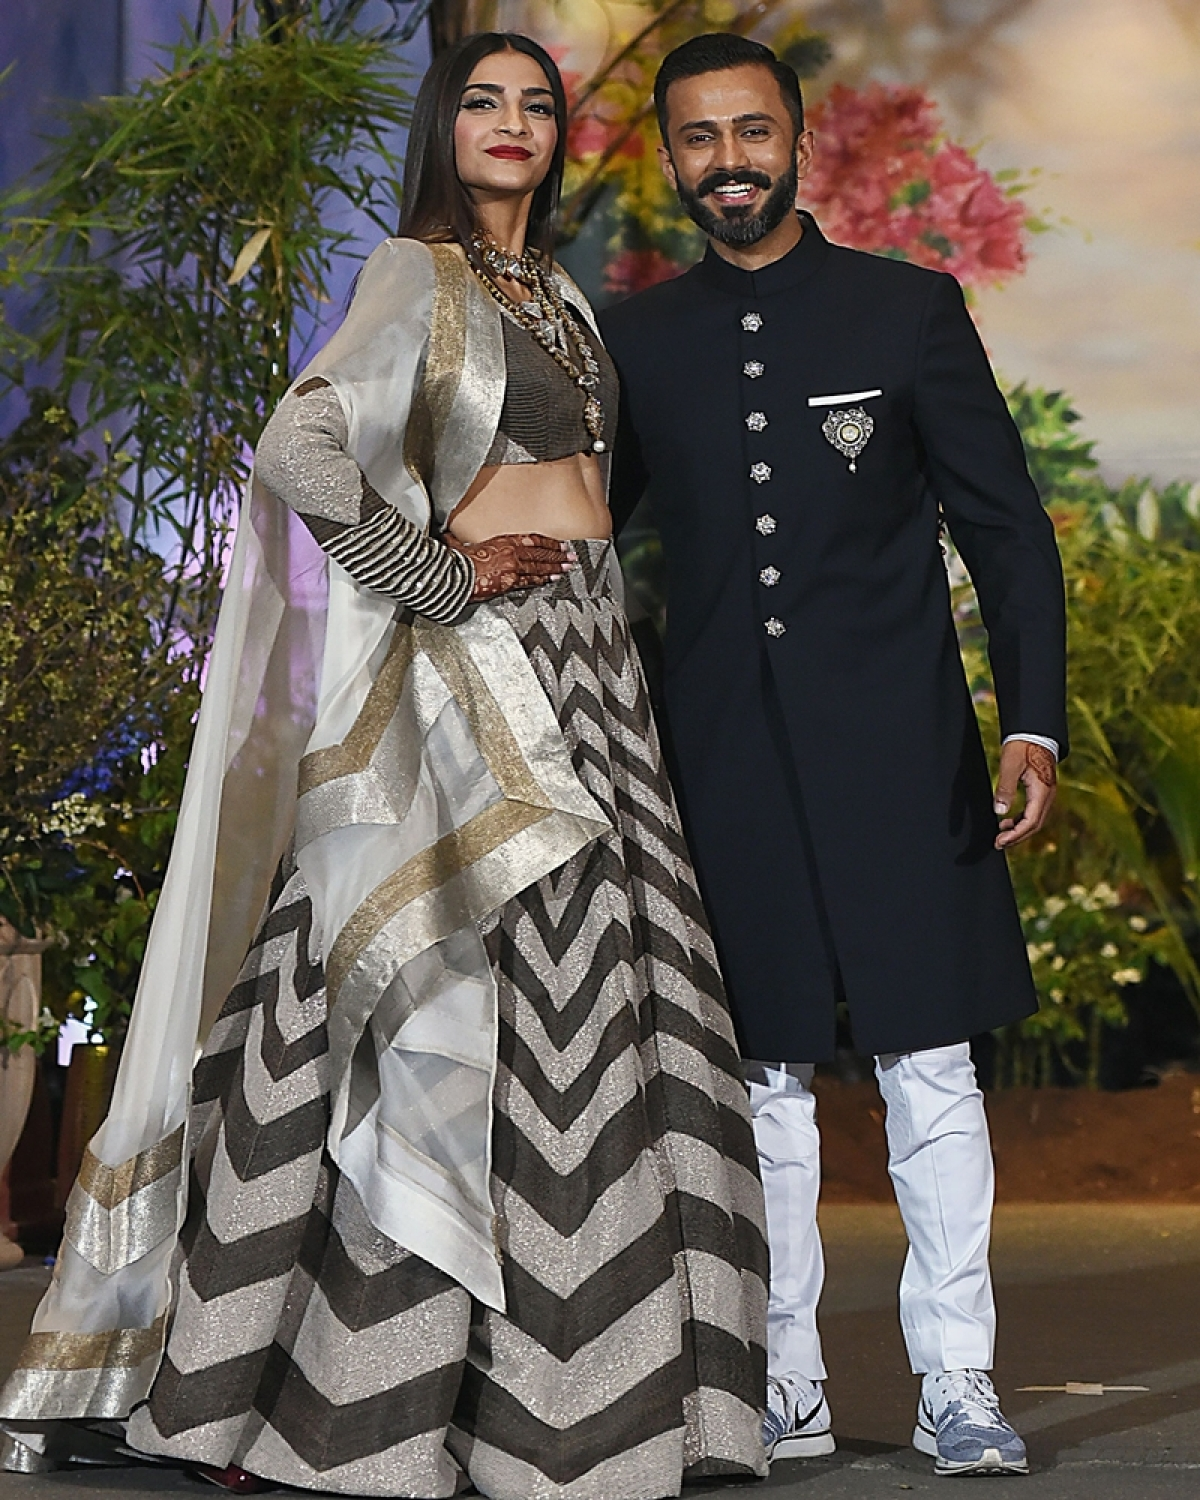 Indian Bollywood actress Sonam Kapoor poses with her husband, businessman Anand Ahuja after their traditional marriage ceremony in Mumbai late on May 8, 2018. / AFP PHOTO